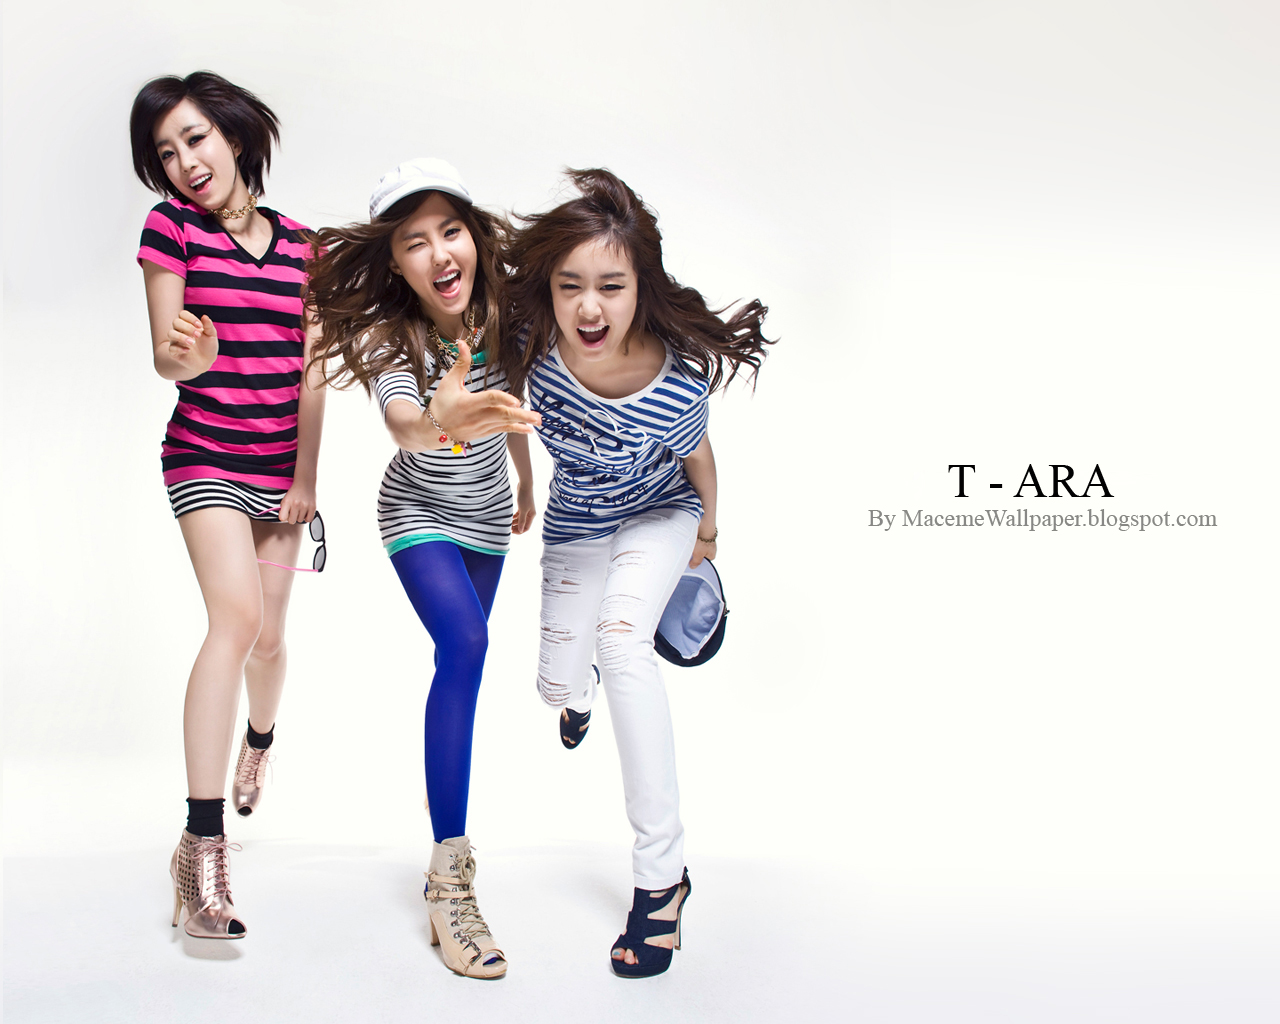 T ara wallpaper maceme wallpaper - T ara wallpaper hd ...